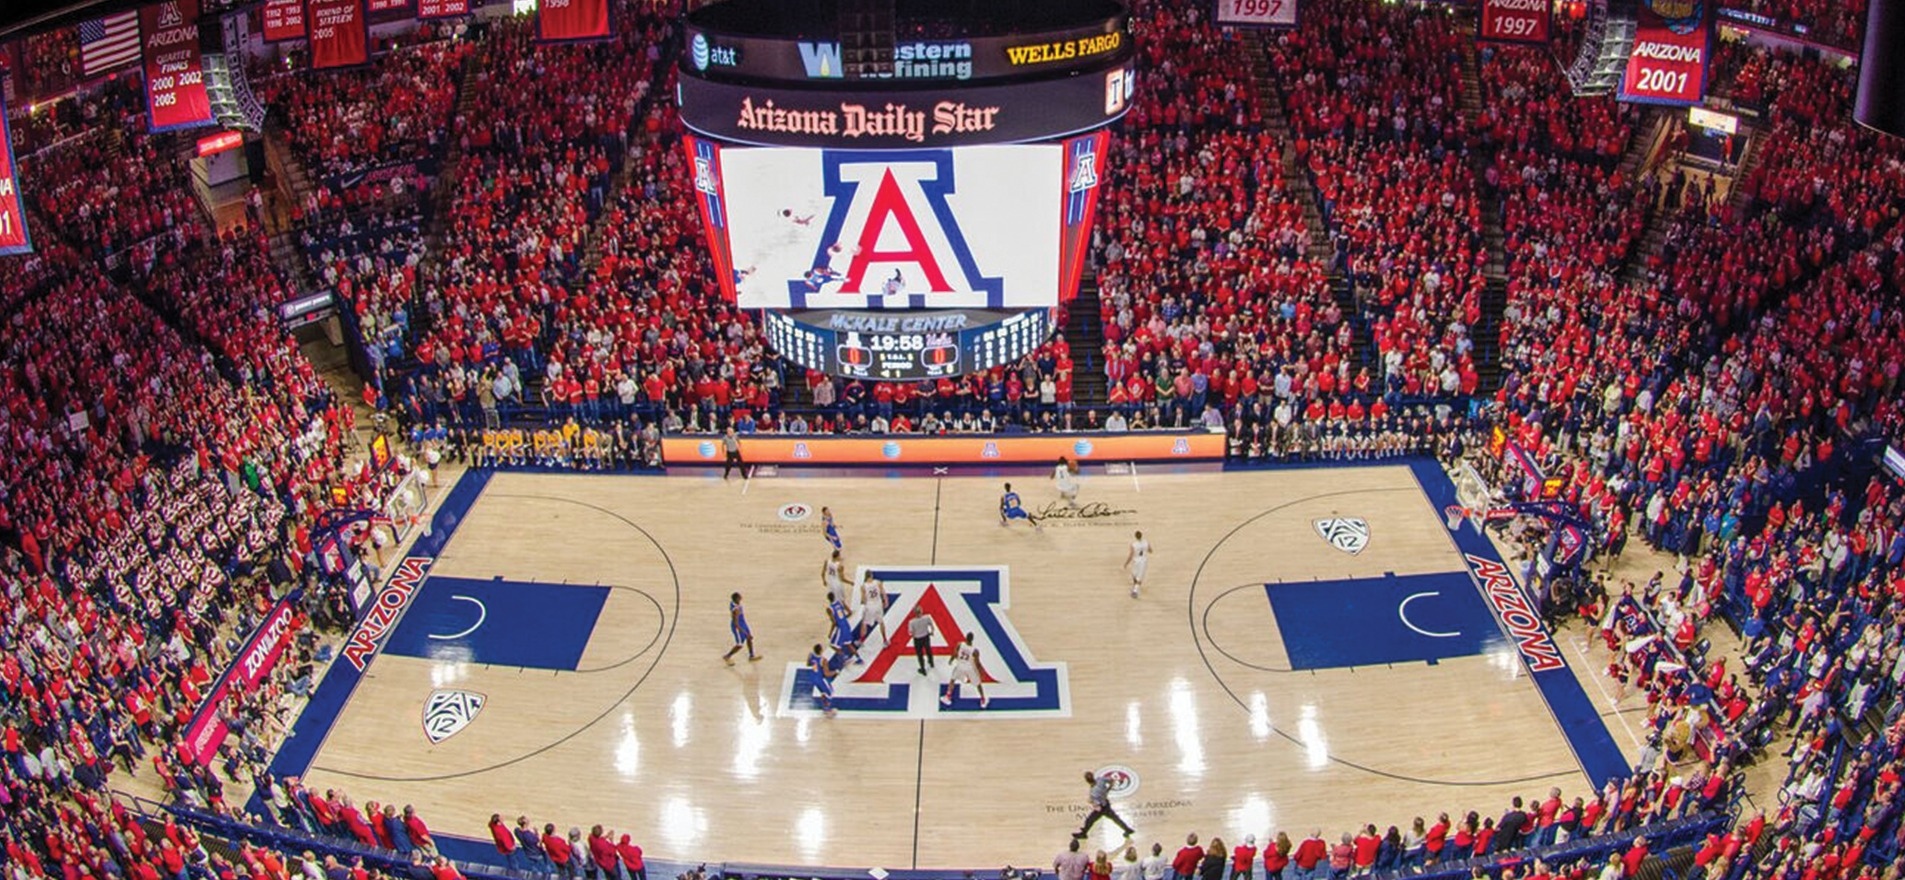 Learfield-Arizona